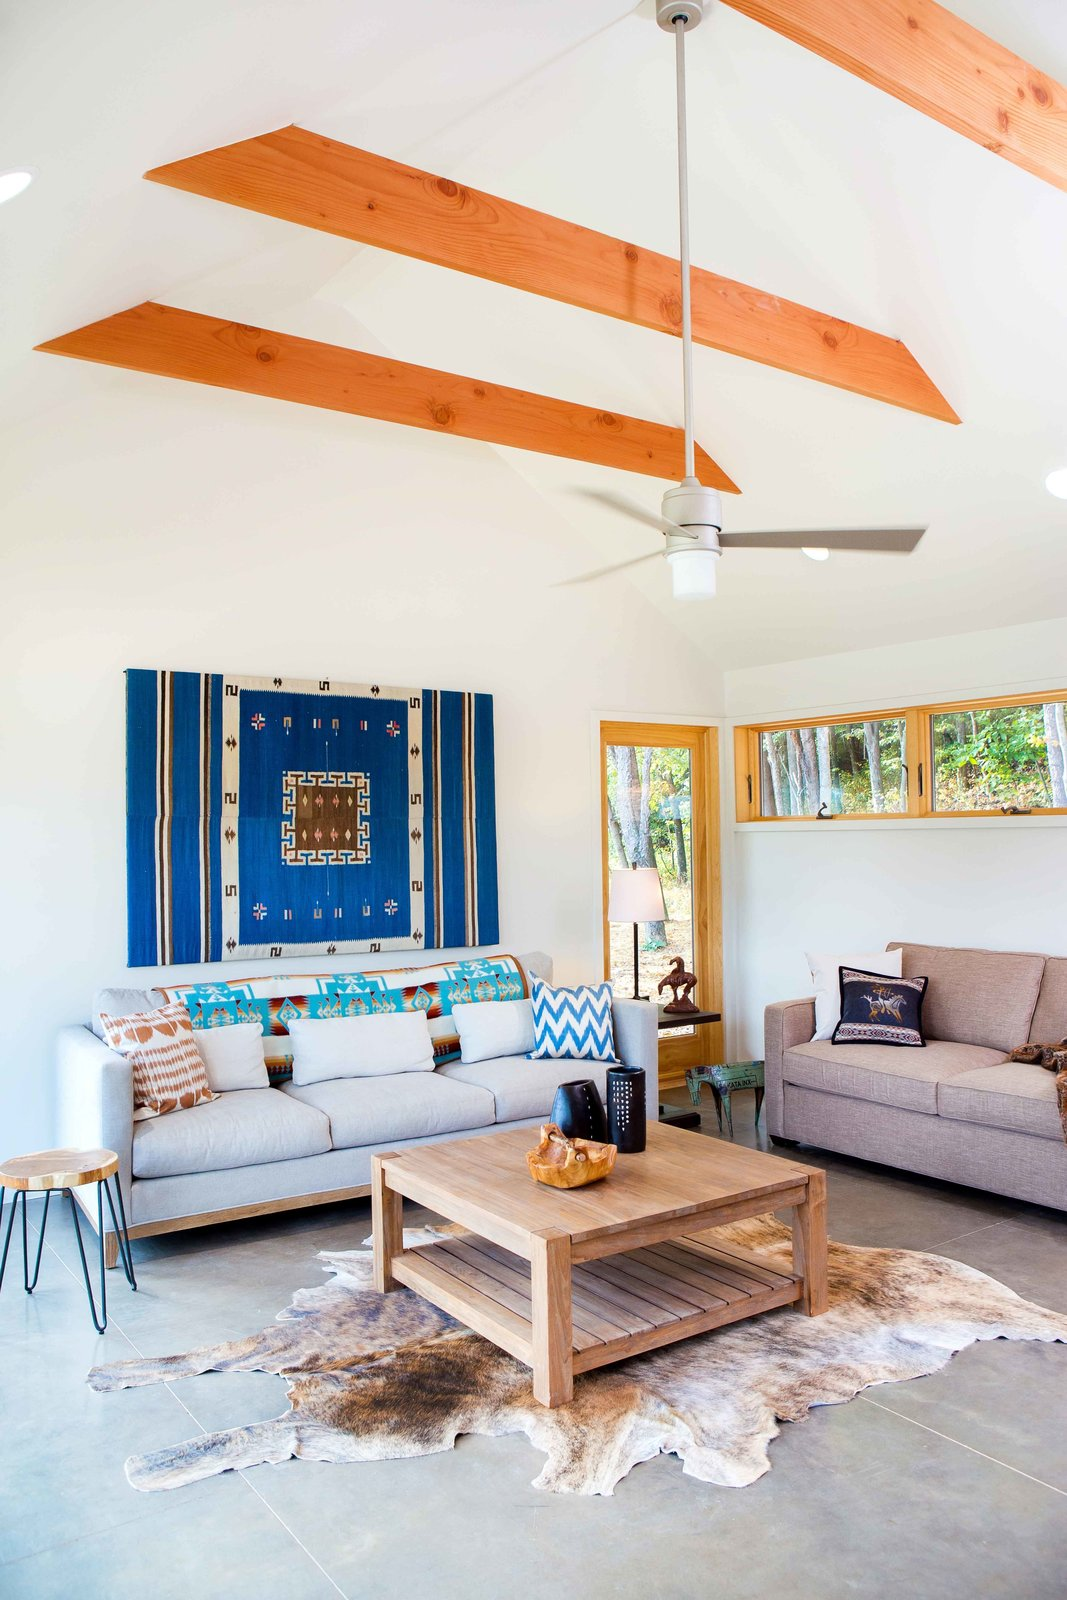 The bright ochres of the Douglas Fir beams and window framing accent the gray and white hues of the furniture, floors, and walls.  Habitats by Jenny Xie from Off-Grid Retreat